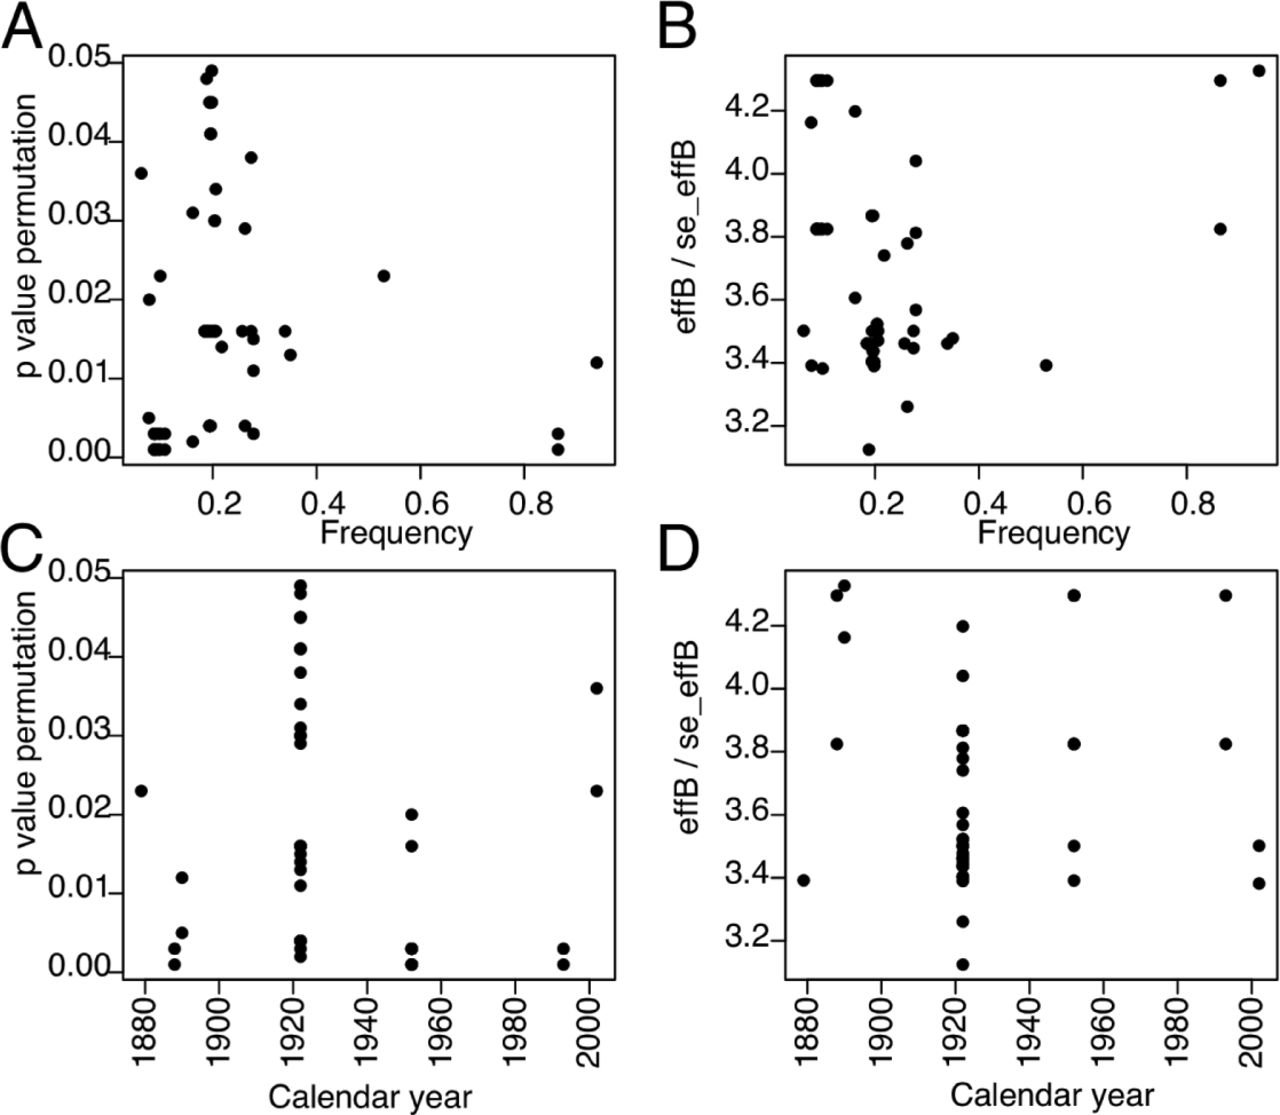 The rate and effect of de novo mutations in a colonizing